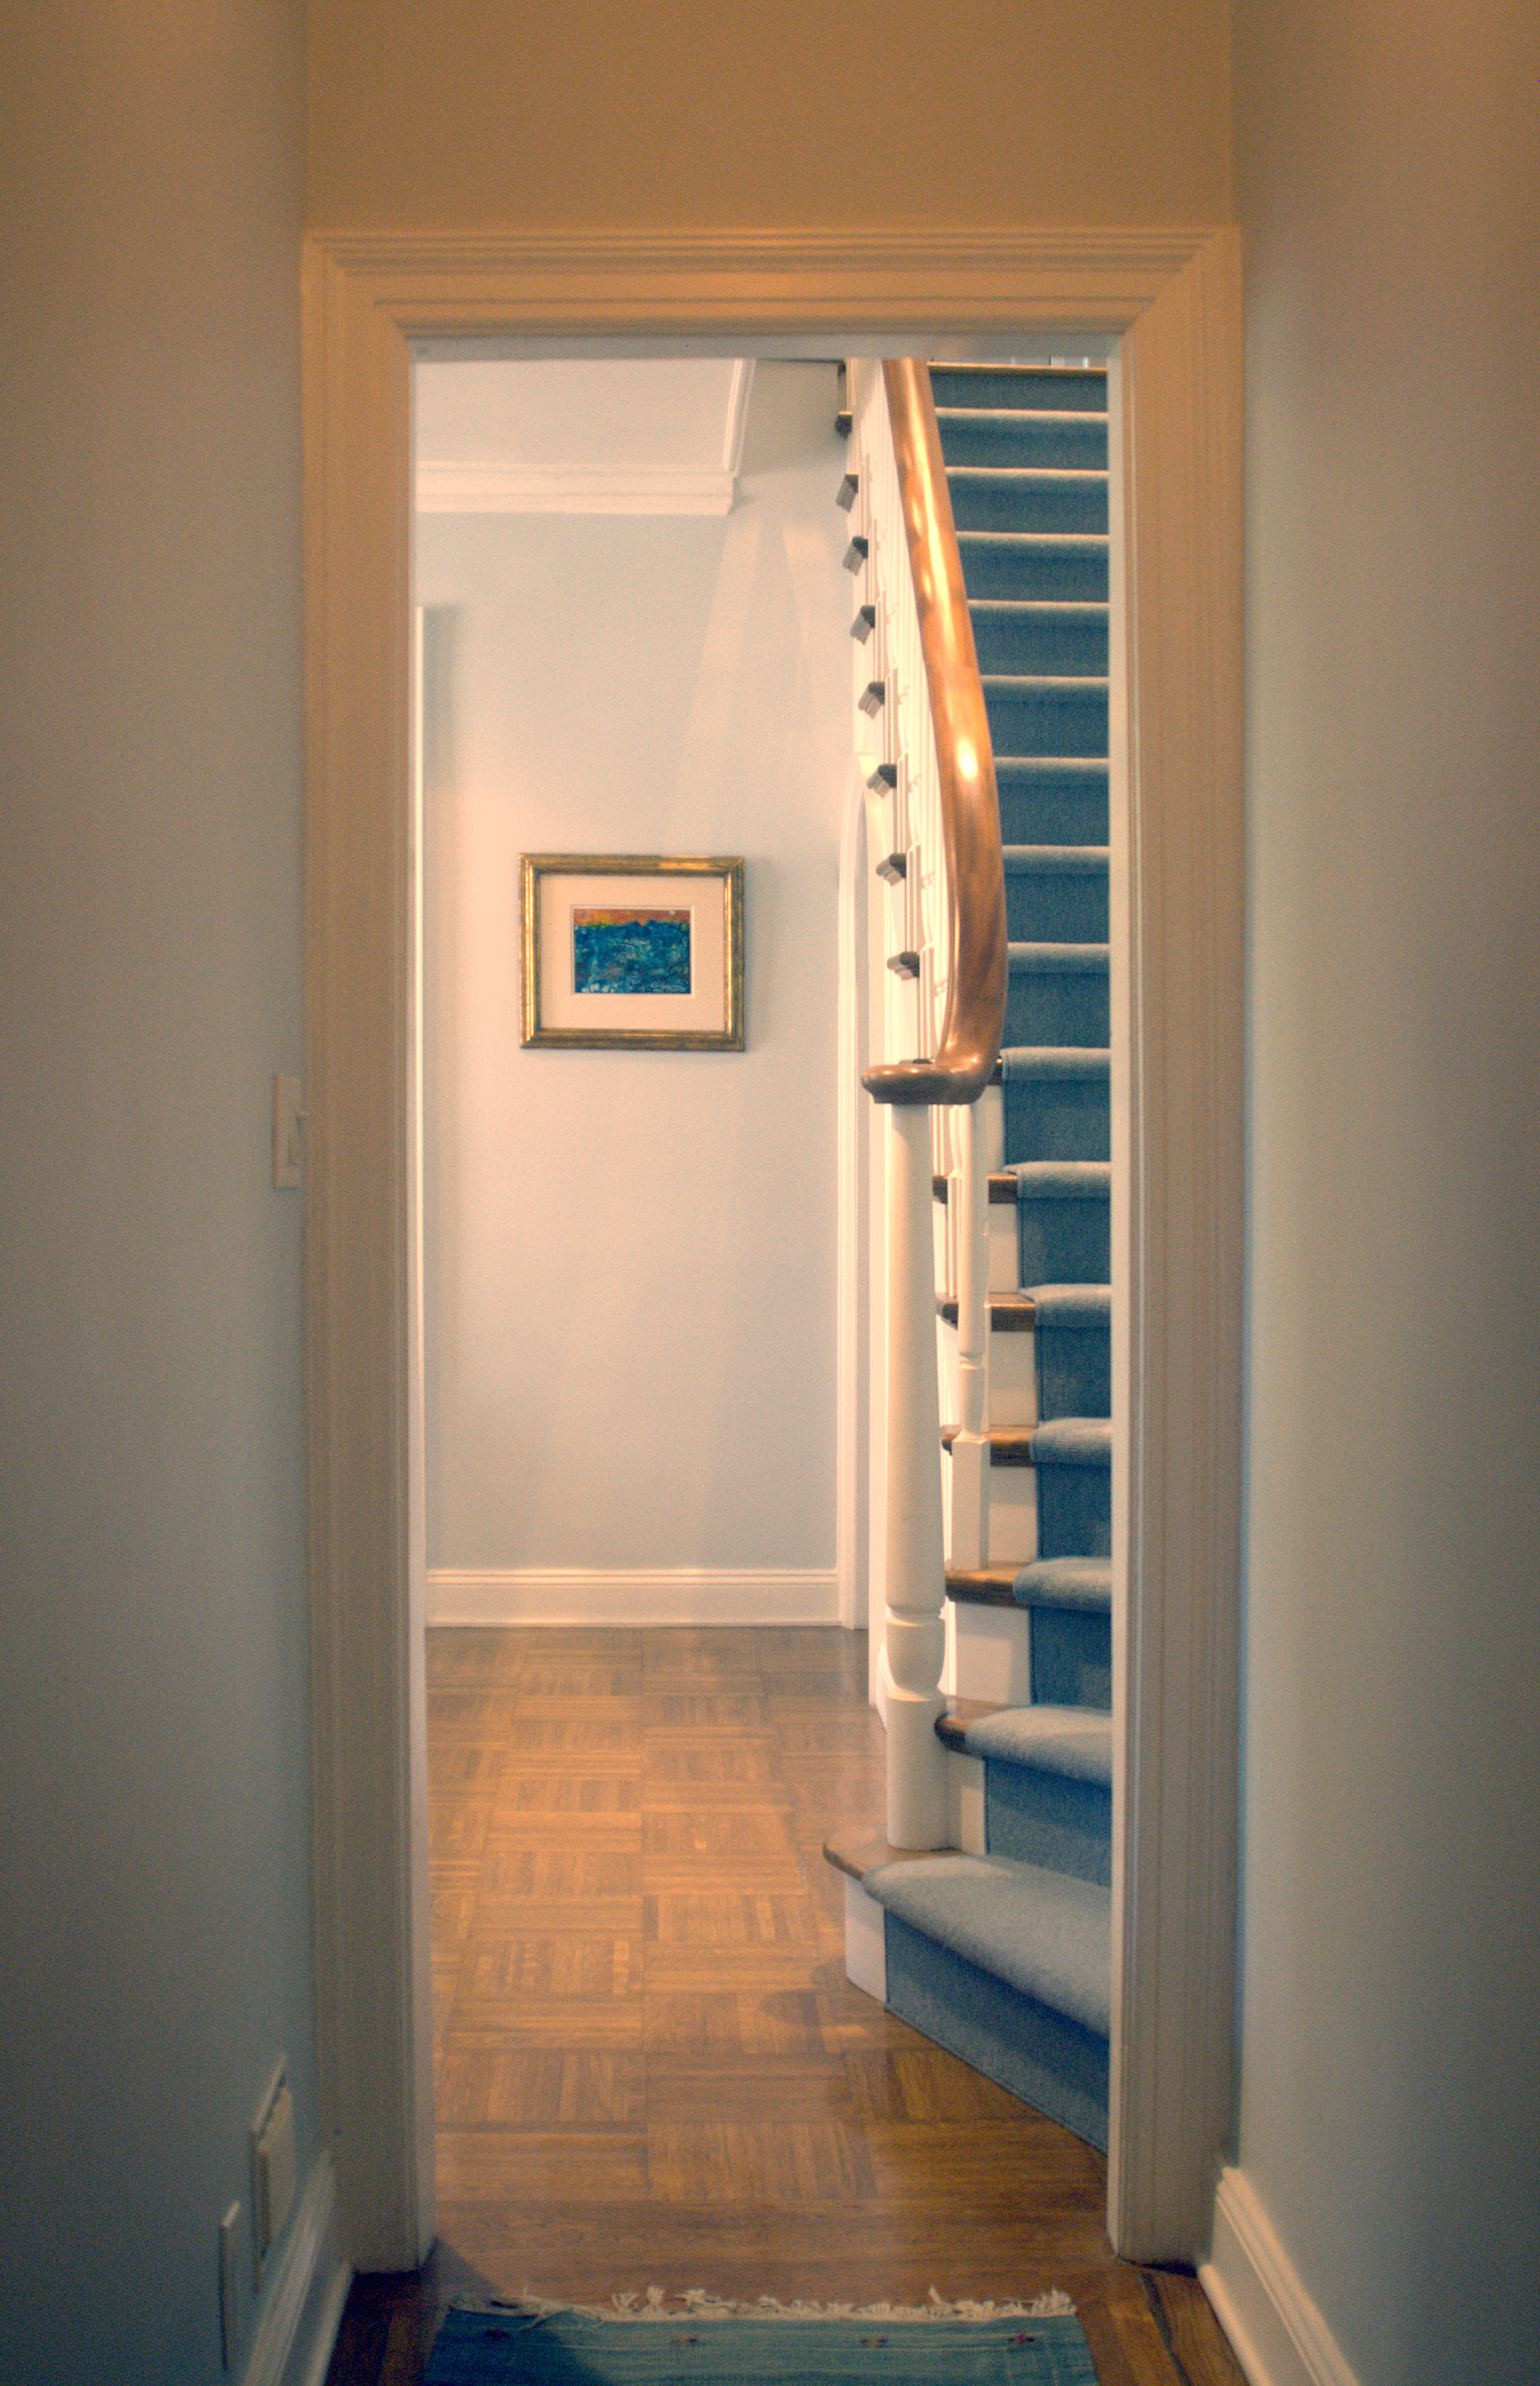 The new stair seen here from the entry vestibule so that the combined apartment feels like a townhouse in the sky.